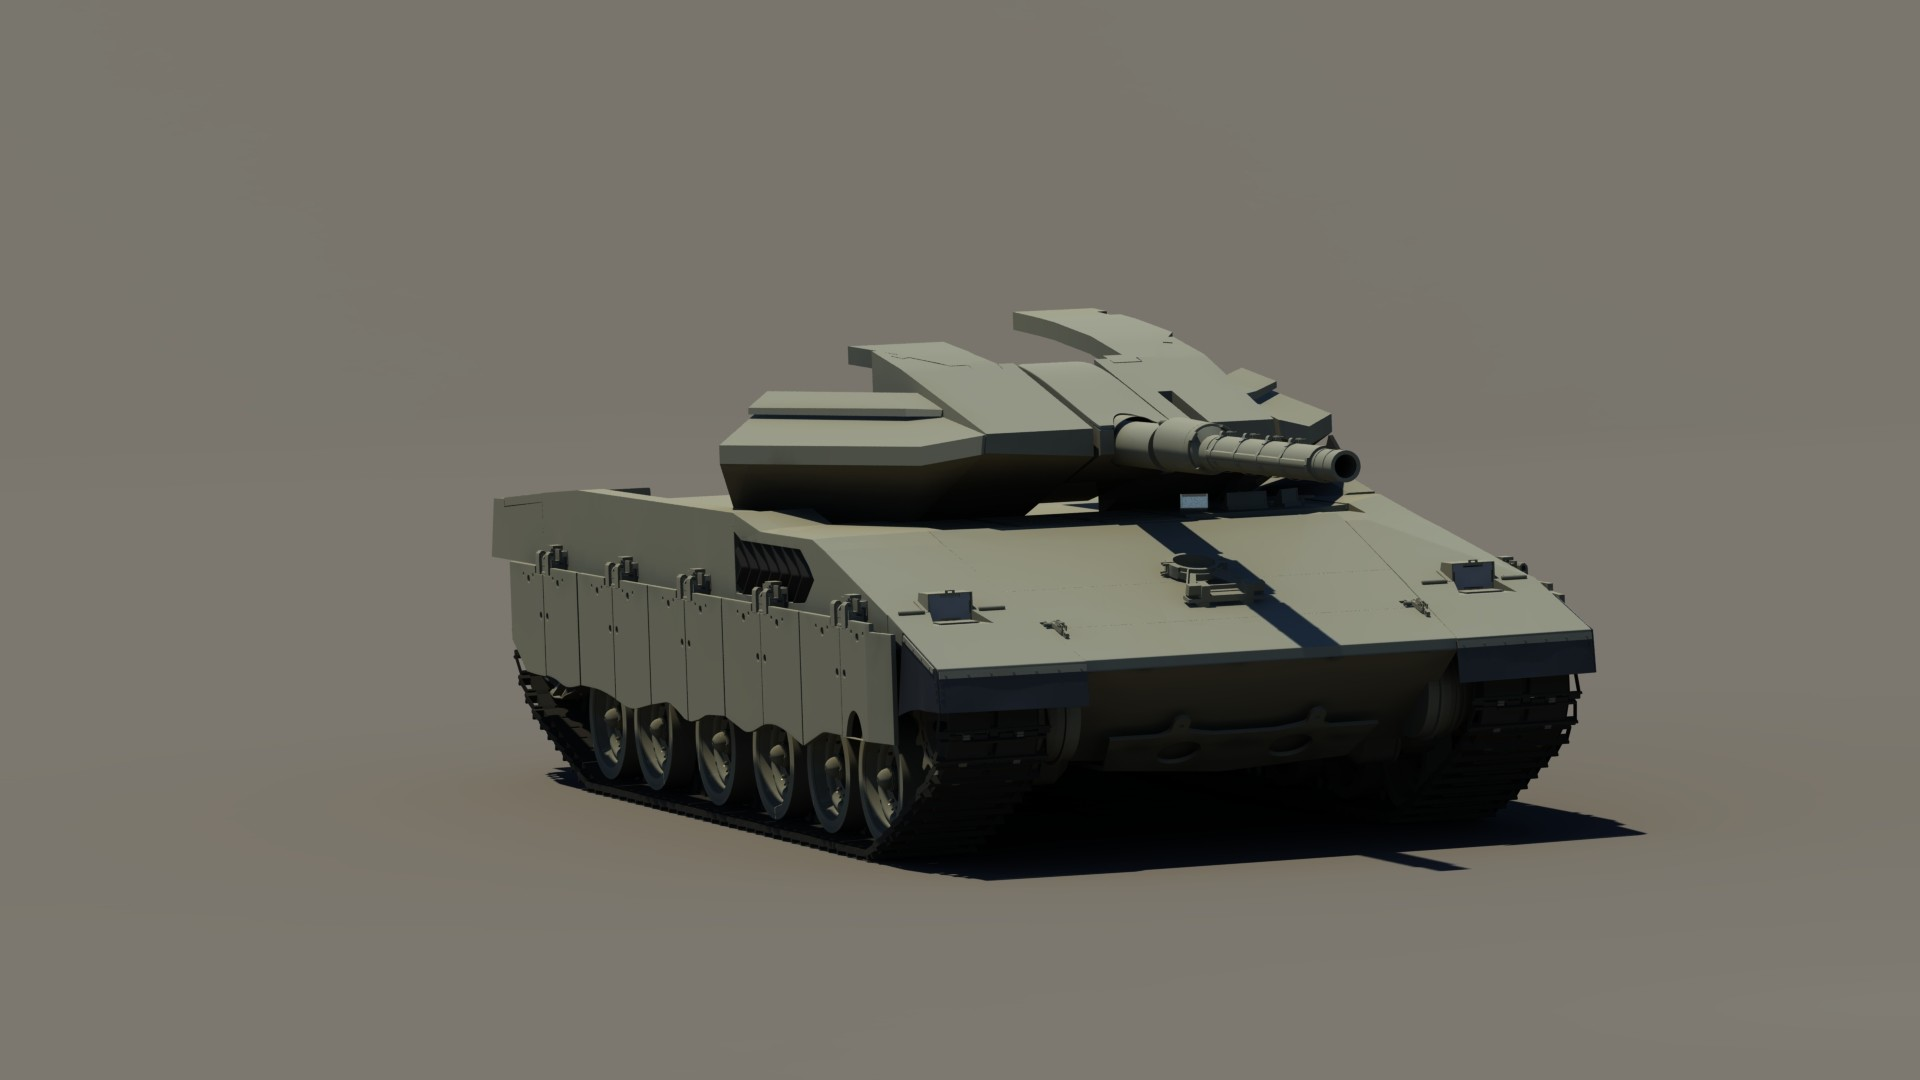 Week 3 WIP render. Front armor sections of turret added.